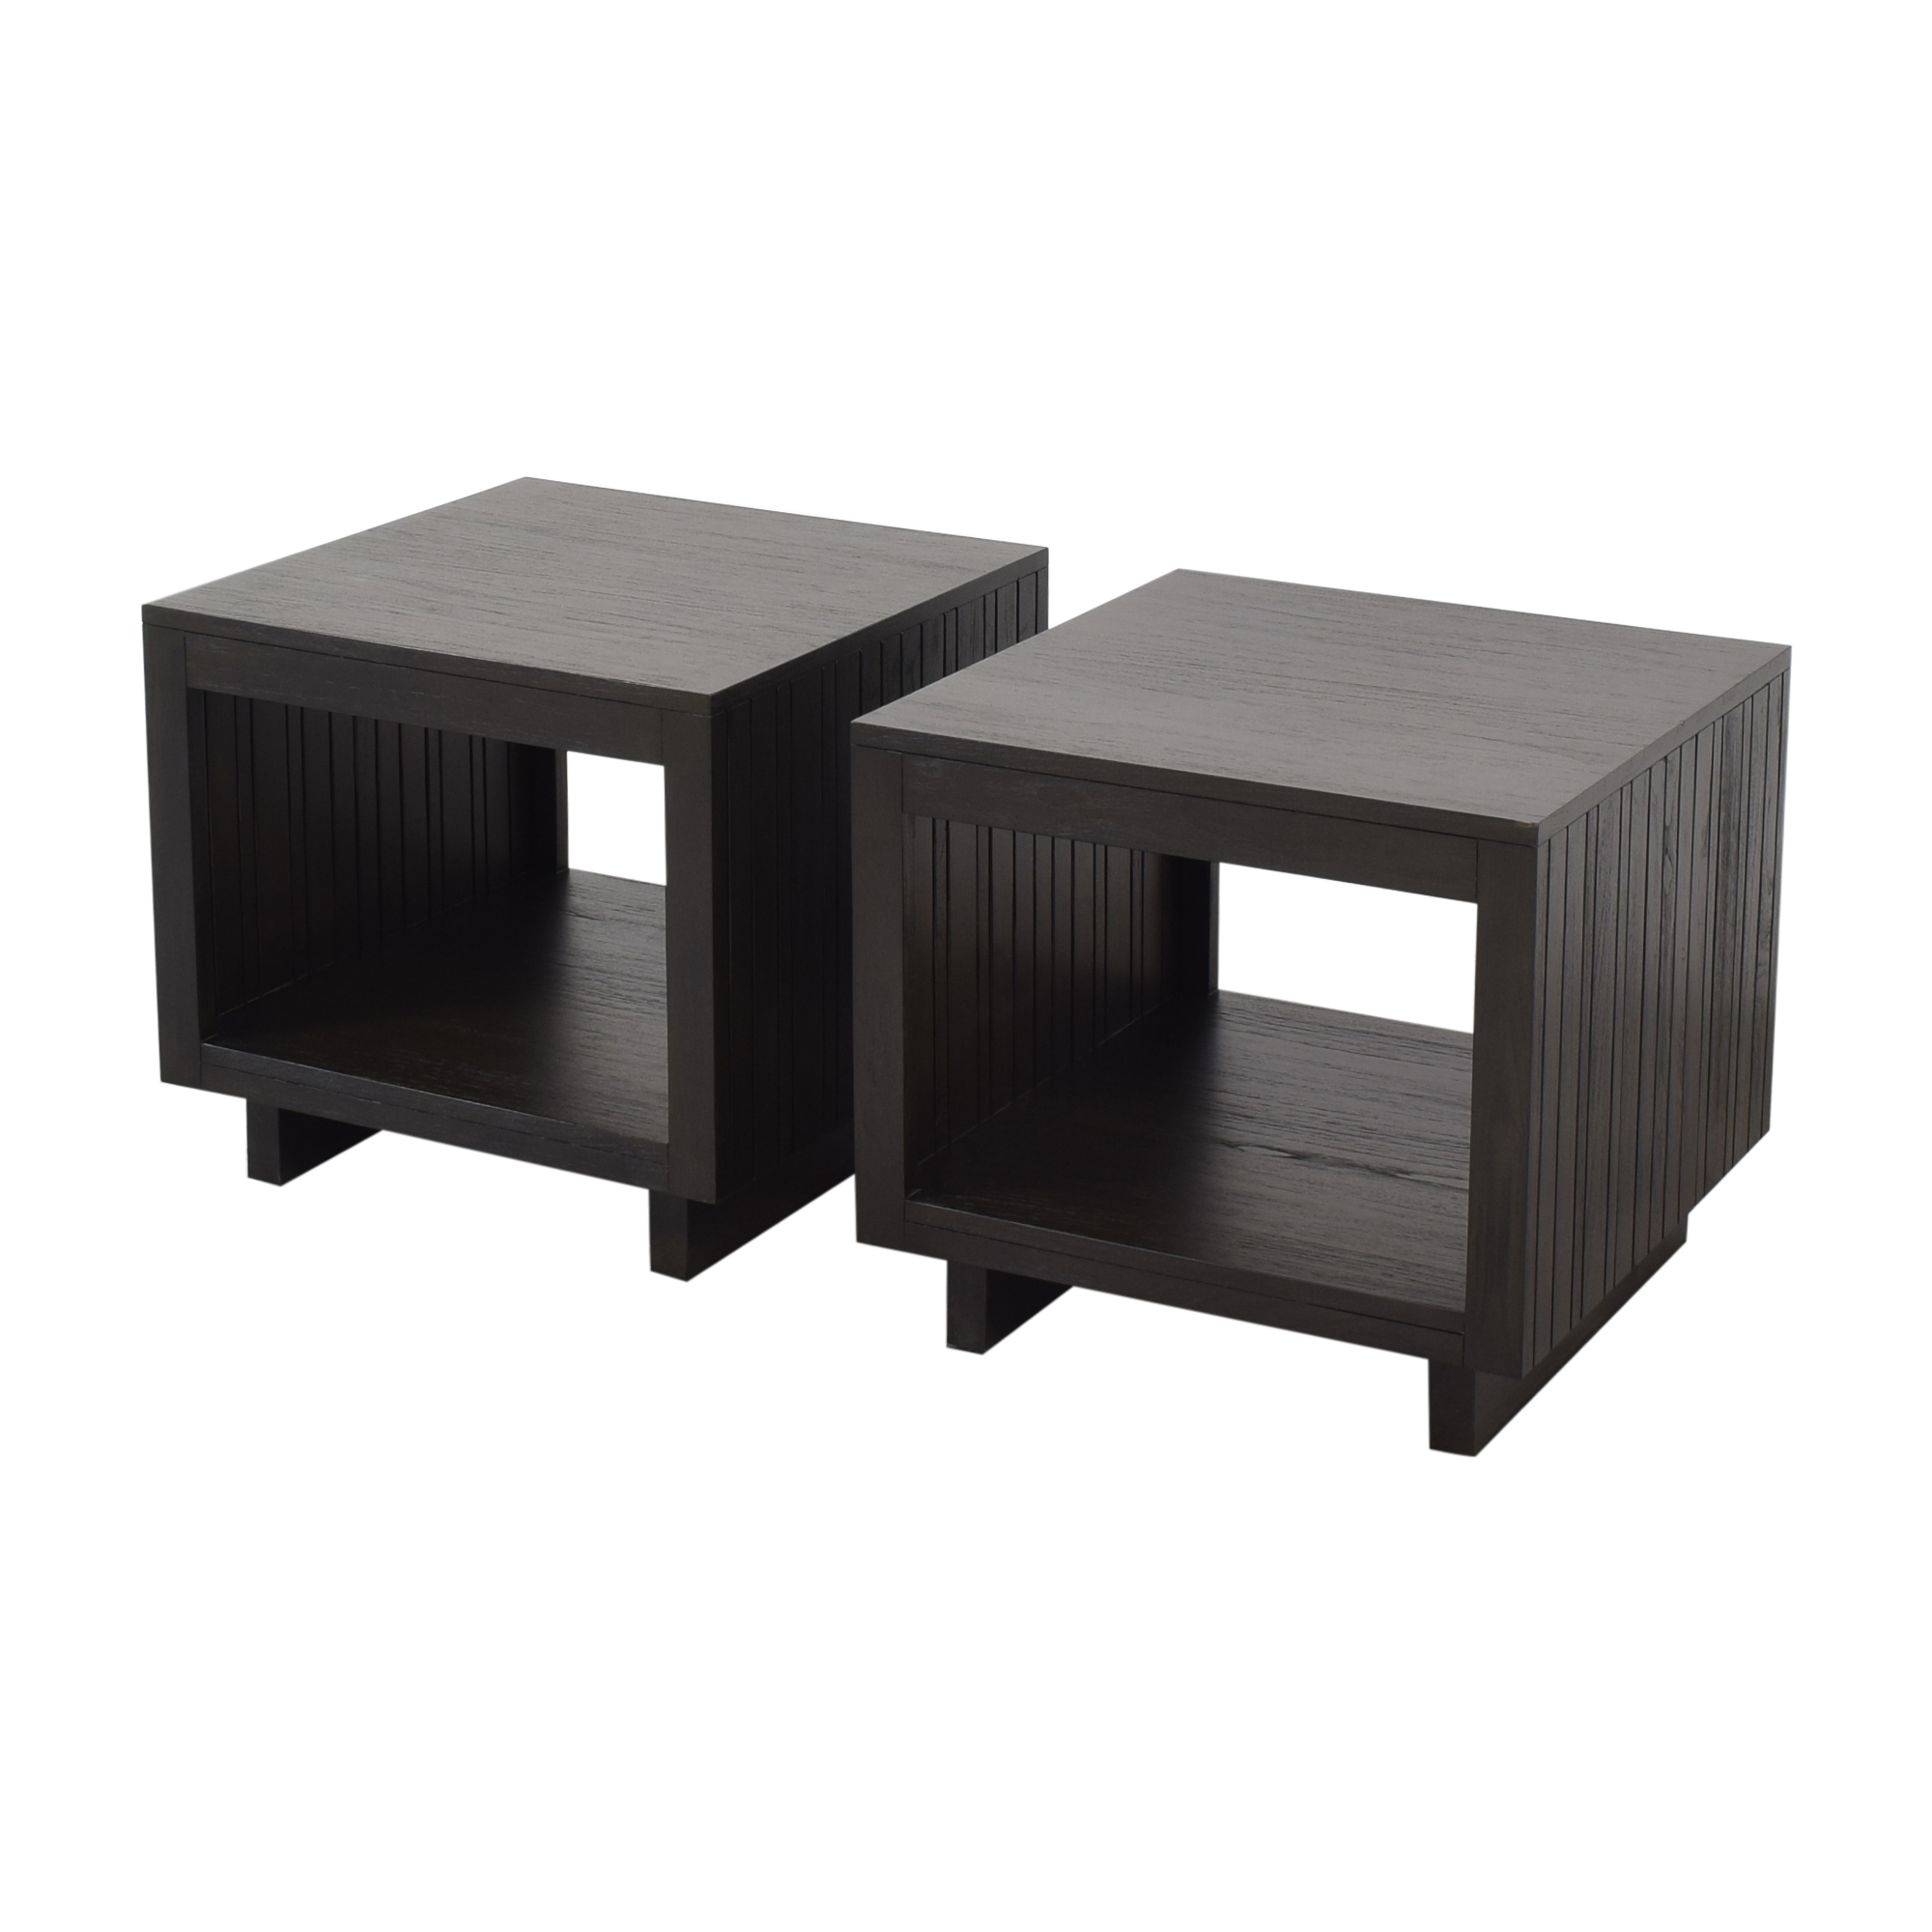 Brownstone Furniture Messina Side Tables / Tables